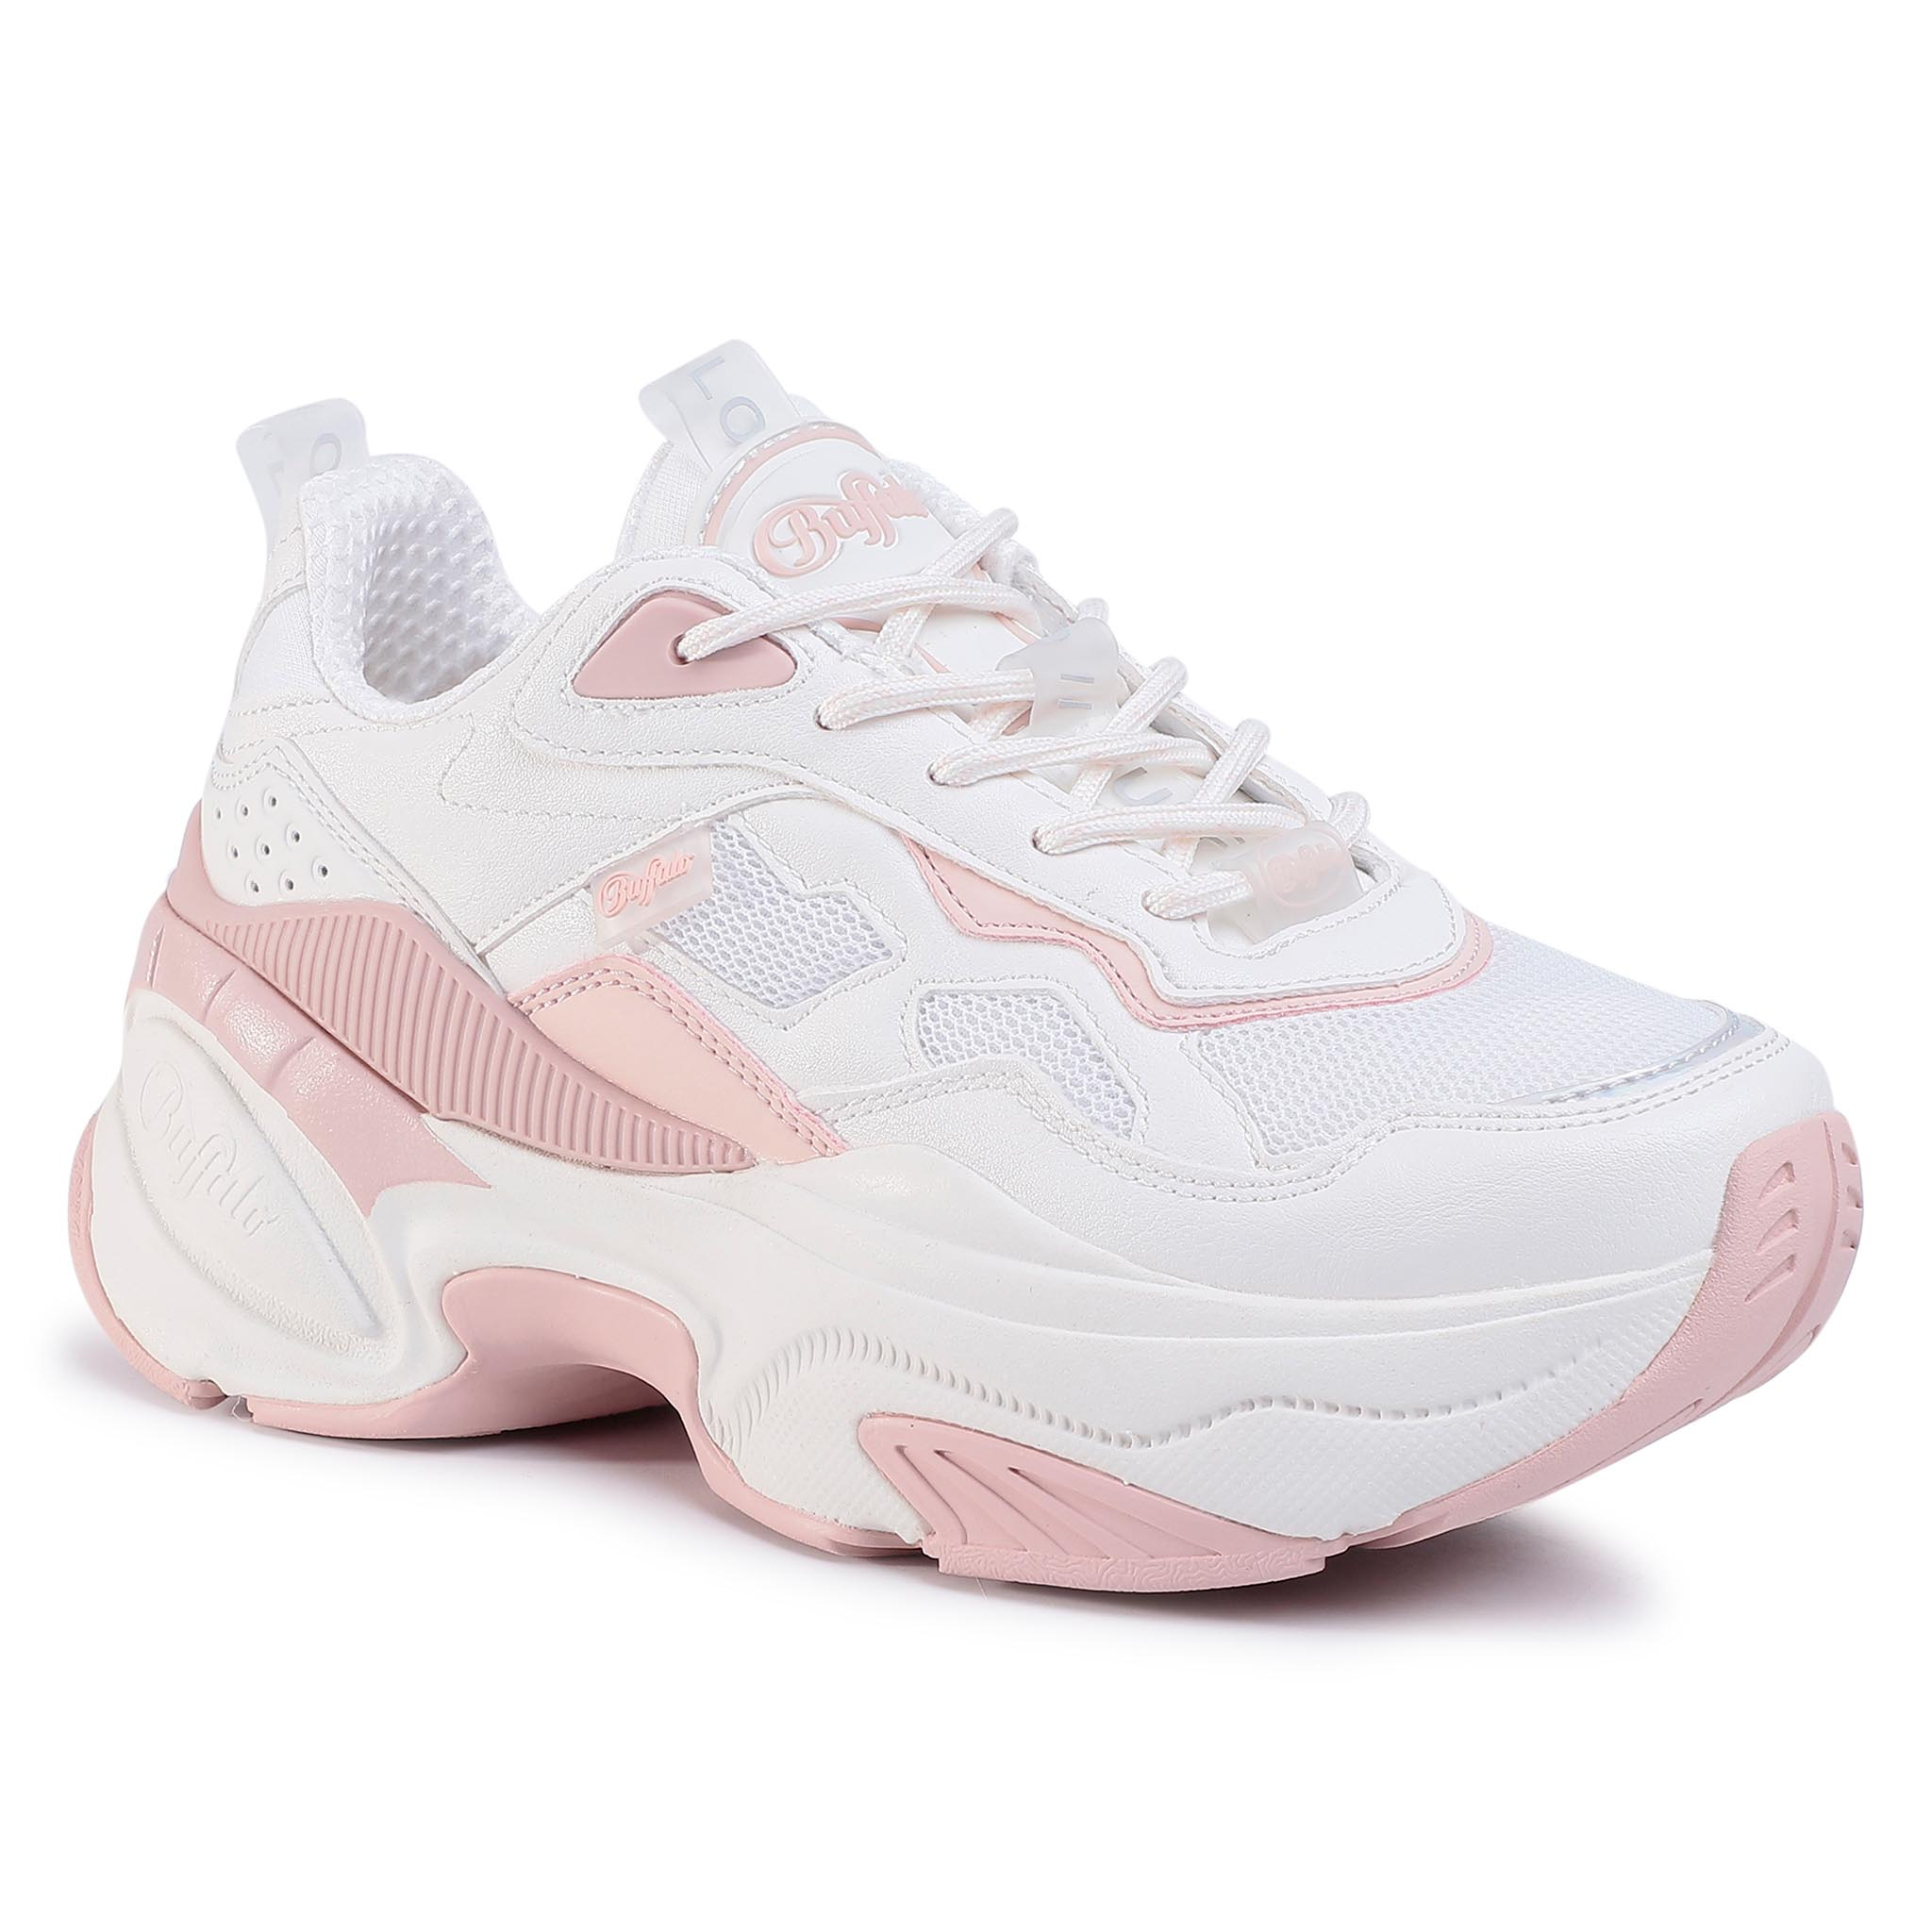 Sneakers BUFFALO - Crevis P1 BN16302971 Cream/Rose